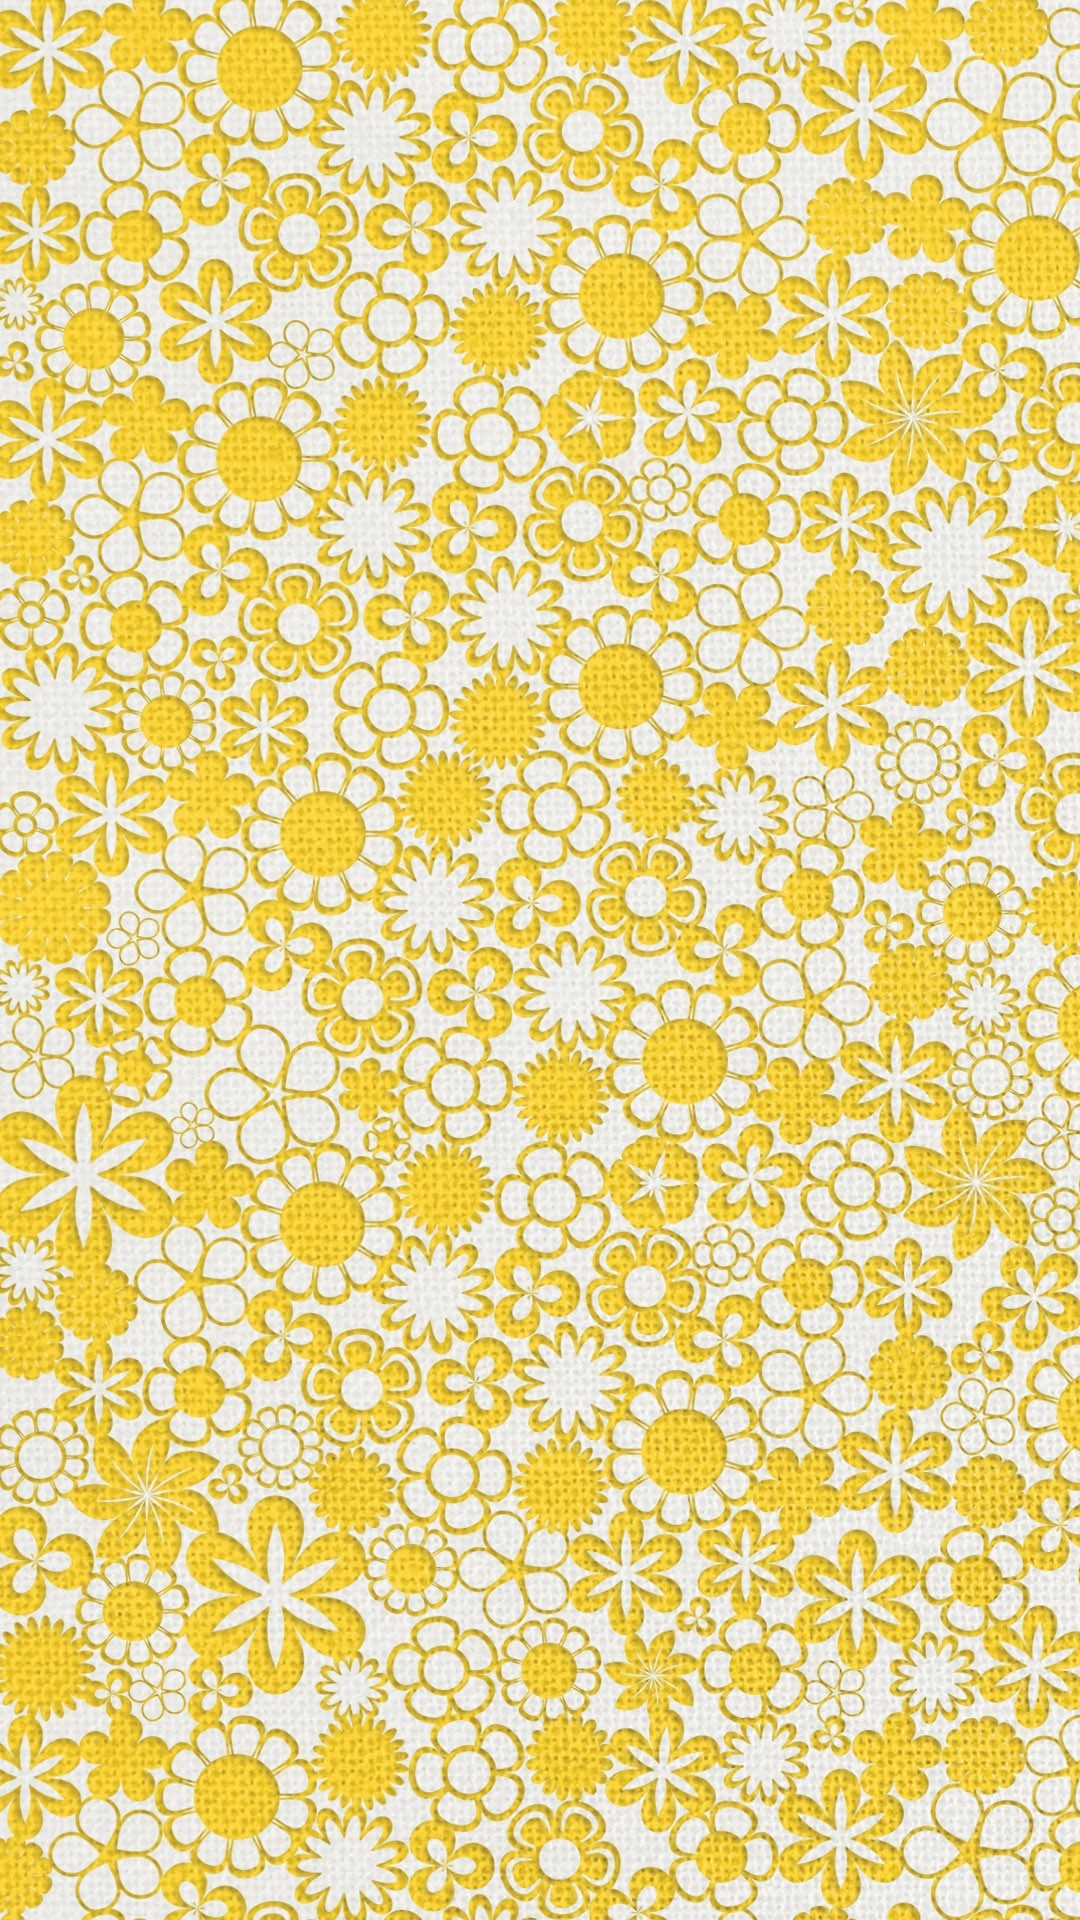 Cute Vintage Floral Wallpaper Floral Yellow Iphone Wallpaper